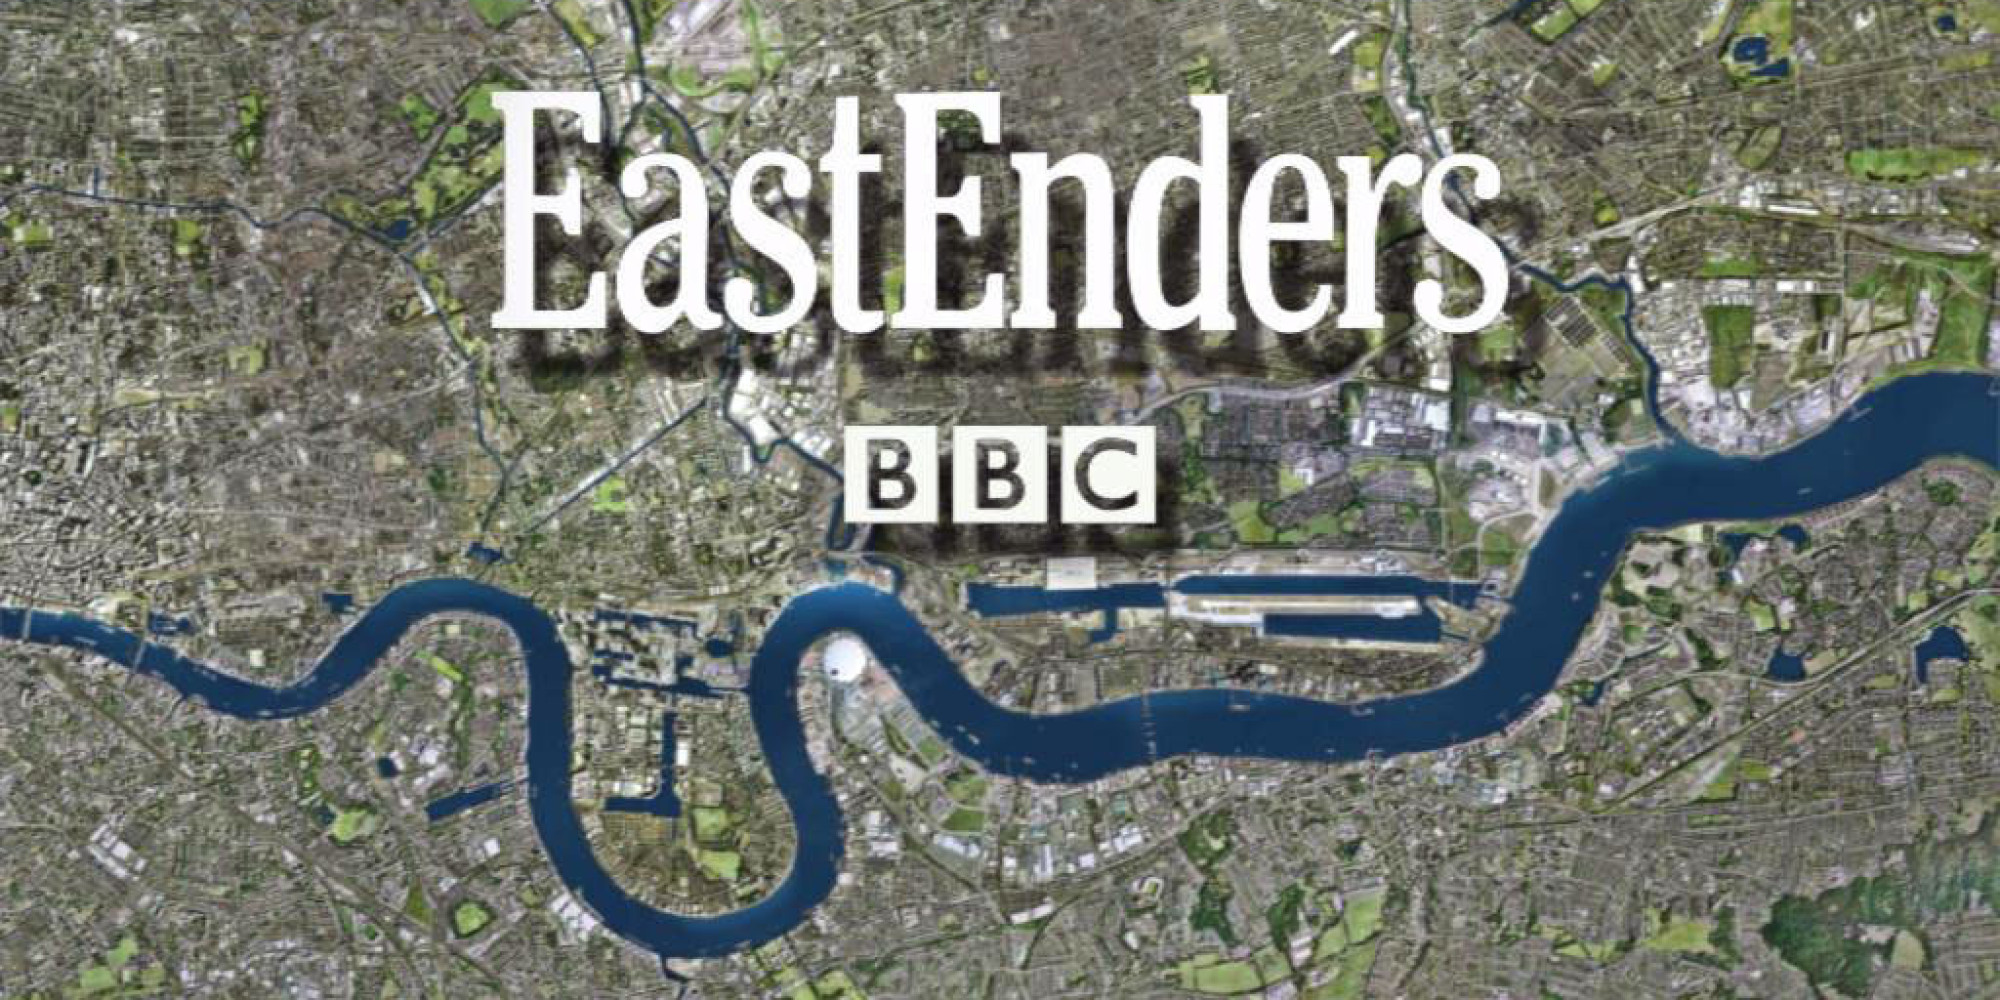 BBC- EastEnders - Jennifer will be hitting Albert Square for the first time on 1st October 2018.. BBC1 8pm